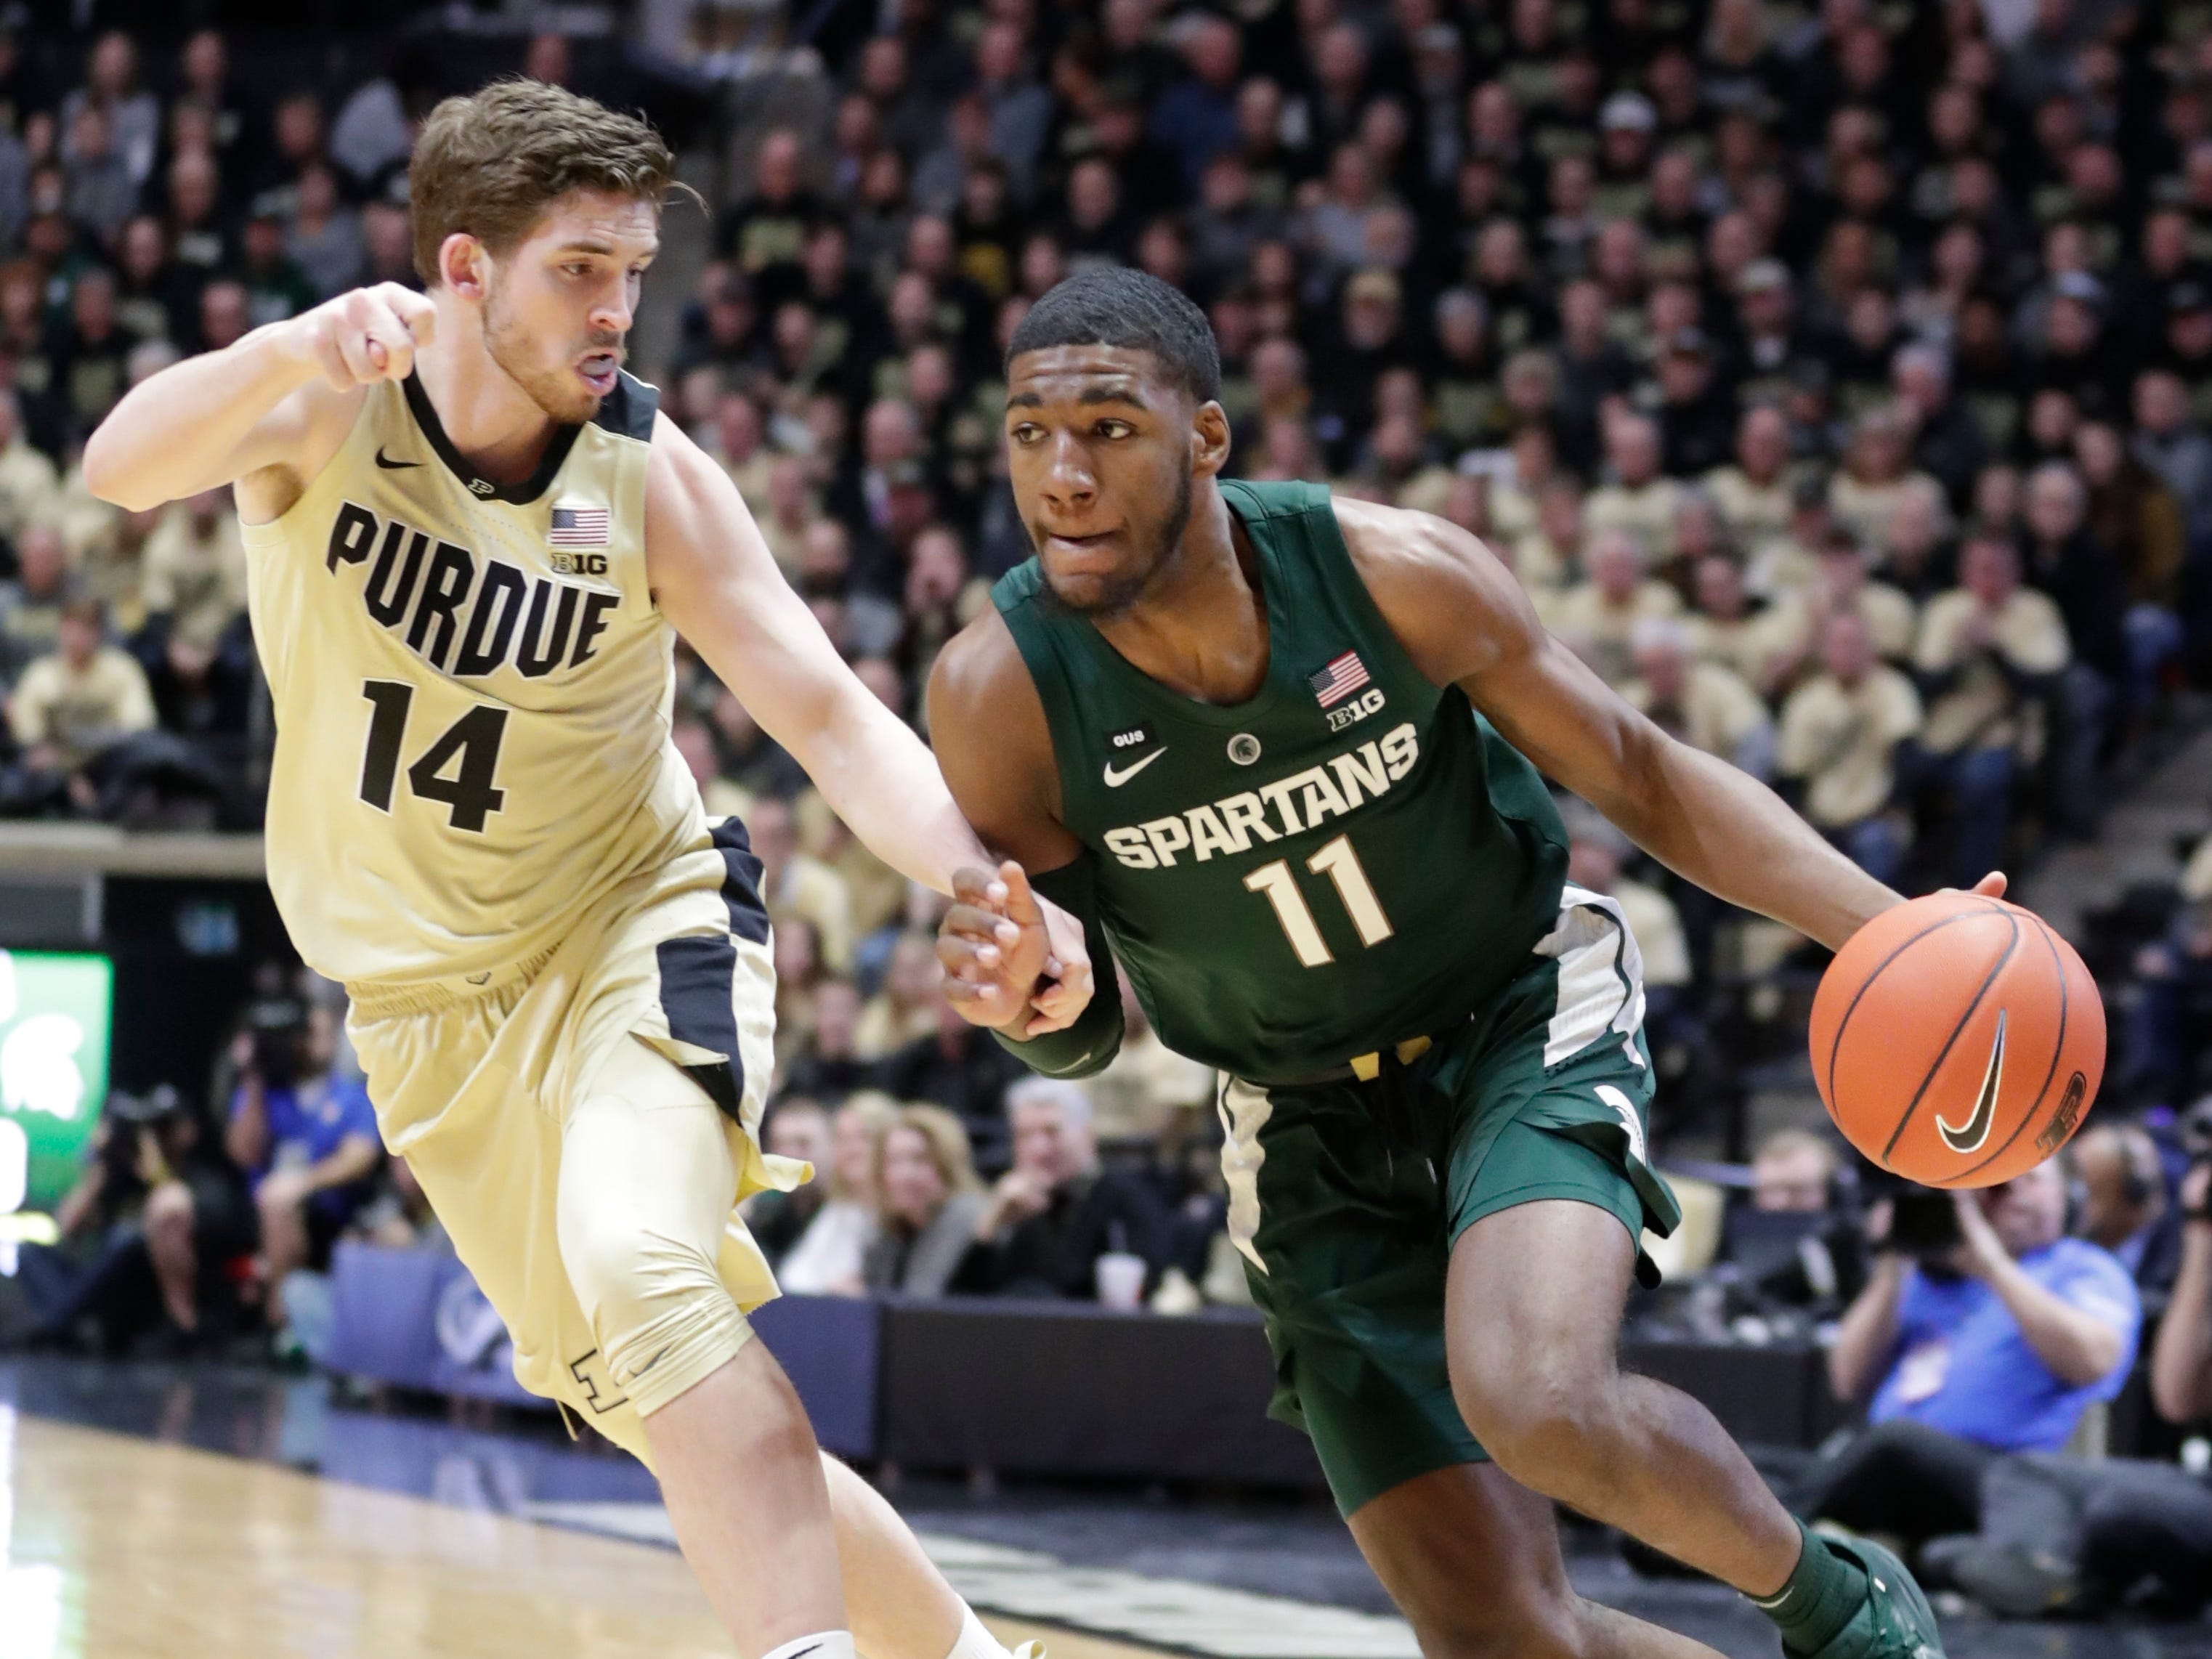 Michigan State forward Aaron Henry (11) drives on Purdue guard Ryan Cline (14) during the first half of an NCAA college basketball game in West Lafayette, Ind., Sunday, Jan. 27, 2019.